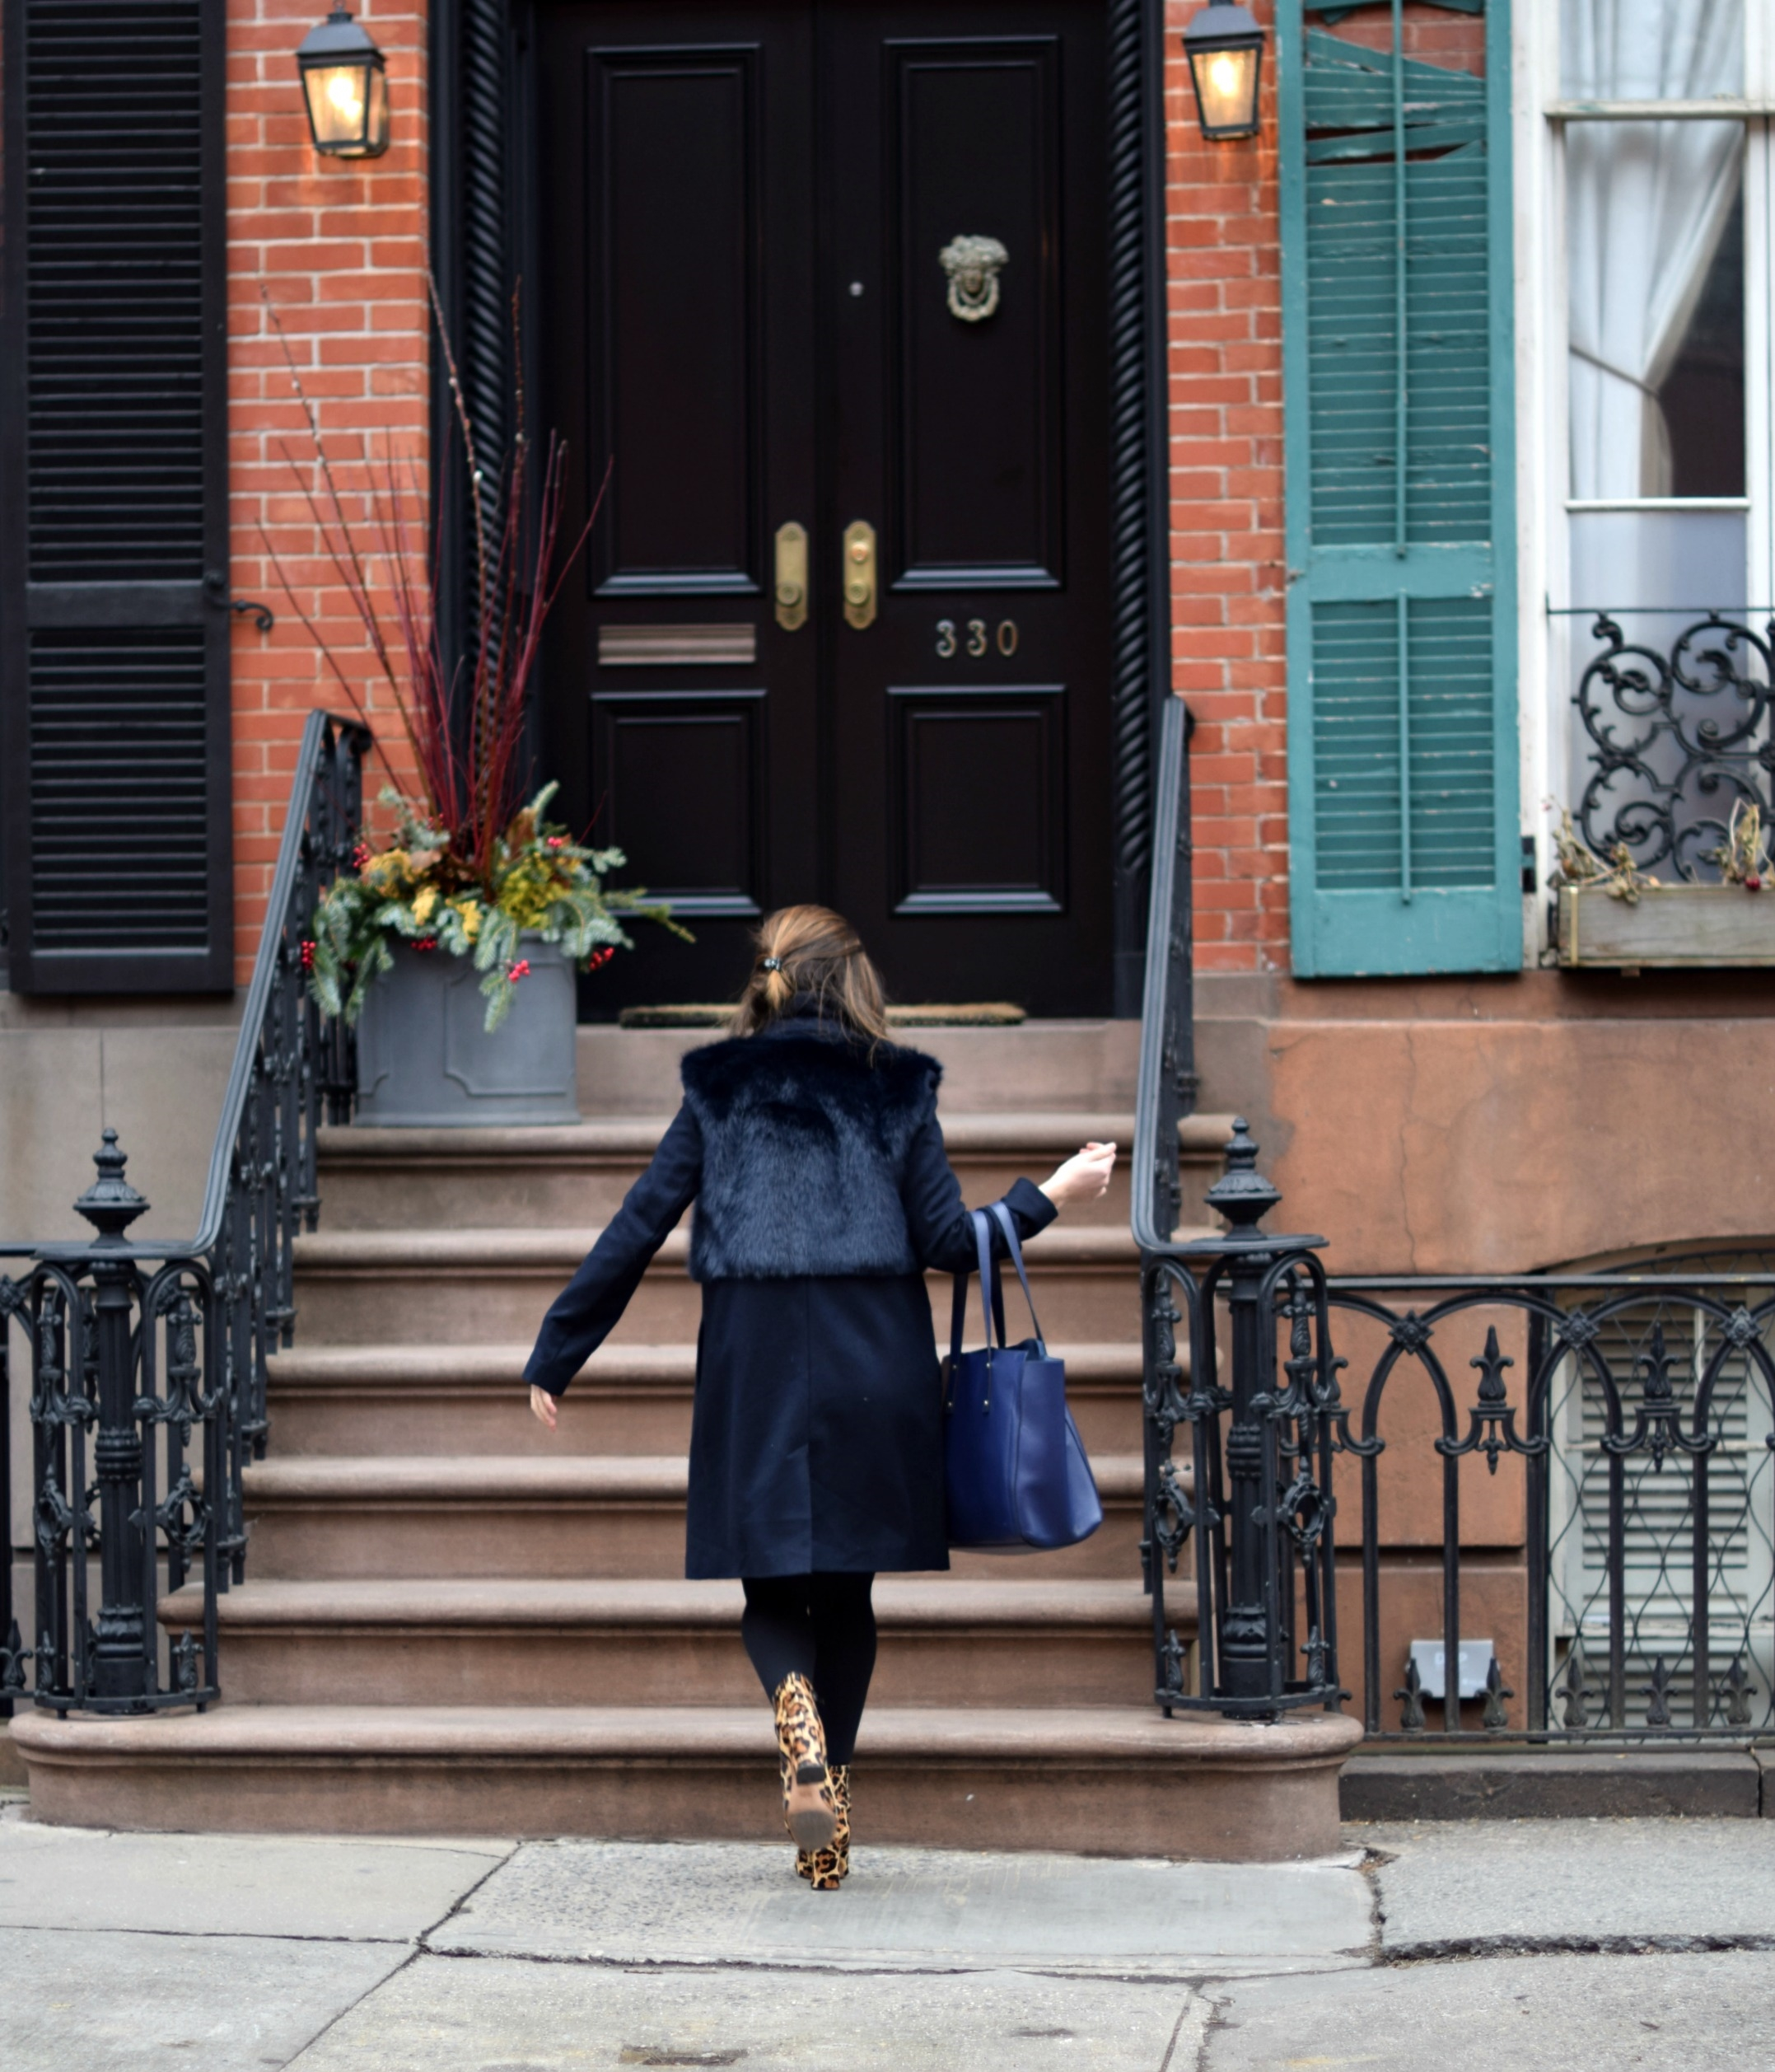 Navy Coat Coach Leopard Booties Louboutins & Love Fashion Blog Esther Santer NYC Street Style Blogger Outfit OOTD Fur Topshop Shopping Girl Women Swag Photoshoot Model Beautiful Winter Look NYFW Shoes Tights Ivanka Trump Soho Tote Hair City Lifestyle.jpg